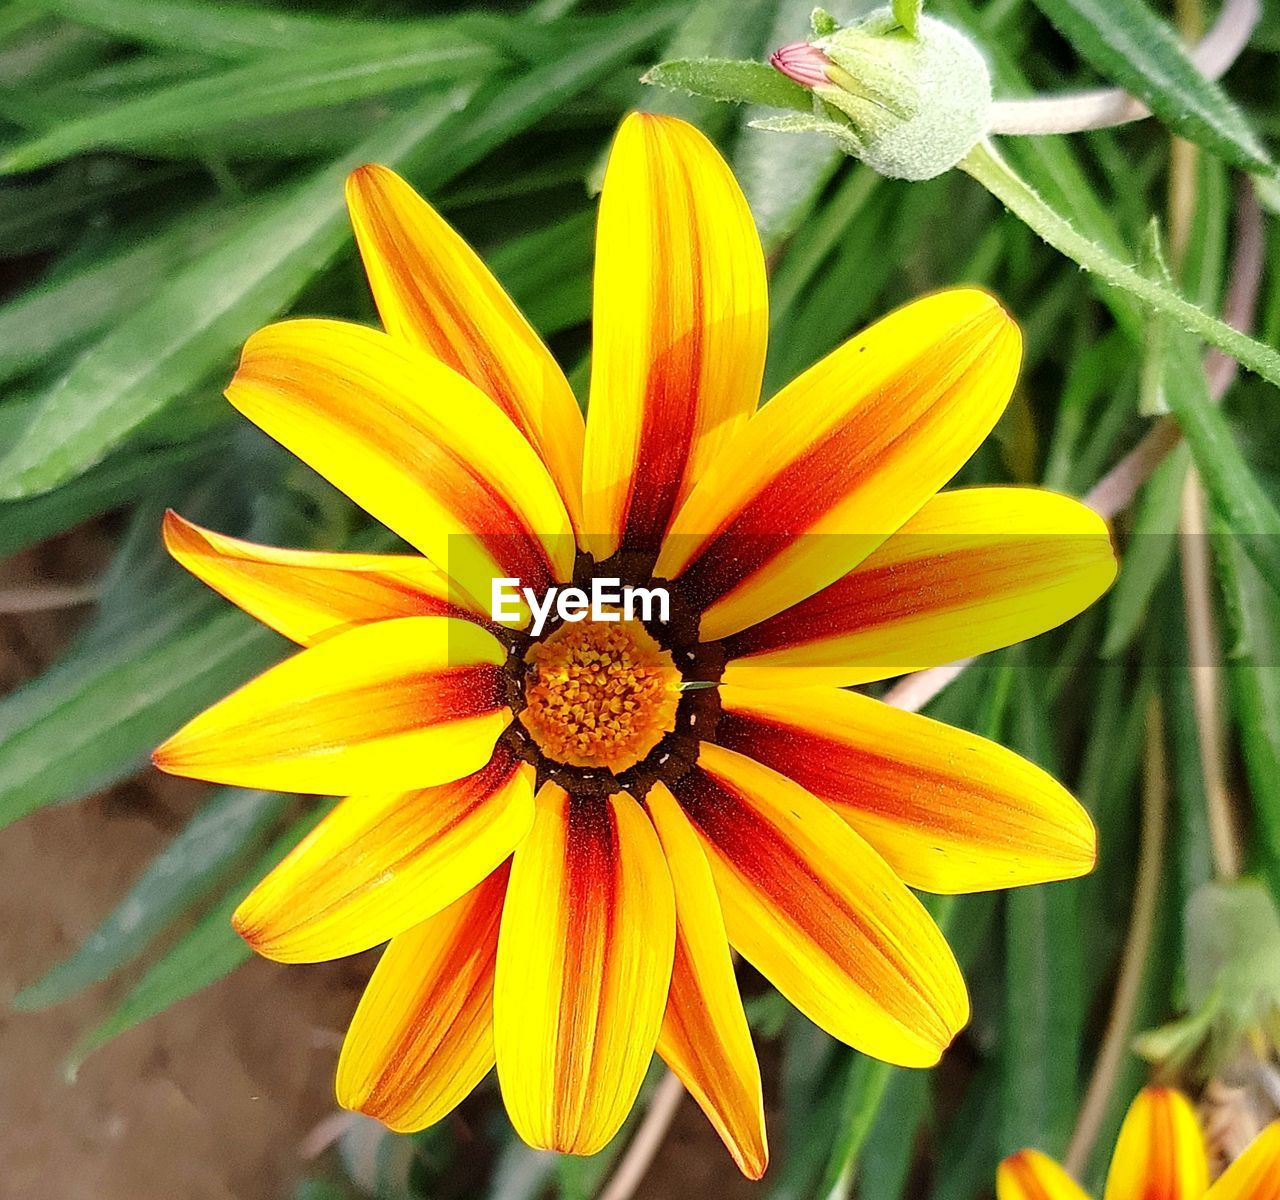 flowering plant, petal, flower, vulnerability, fragility, flower head, inflorescence, beauty in nature, yellow, plant, freshness, close-up, growth, pollen, focus on foreground, no people, day, nature, outdoors, gazania